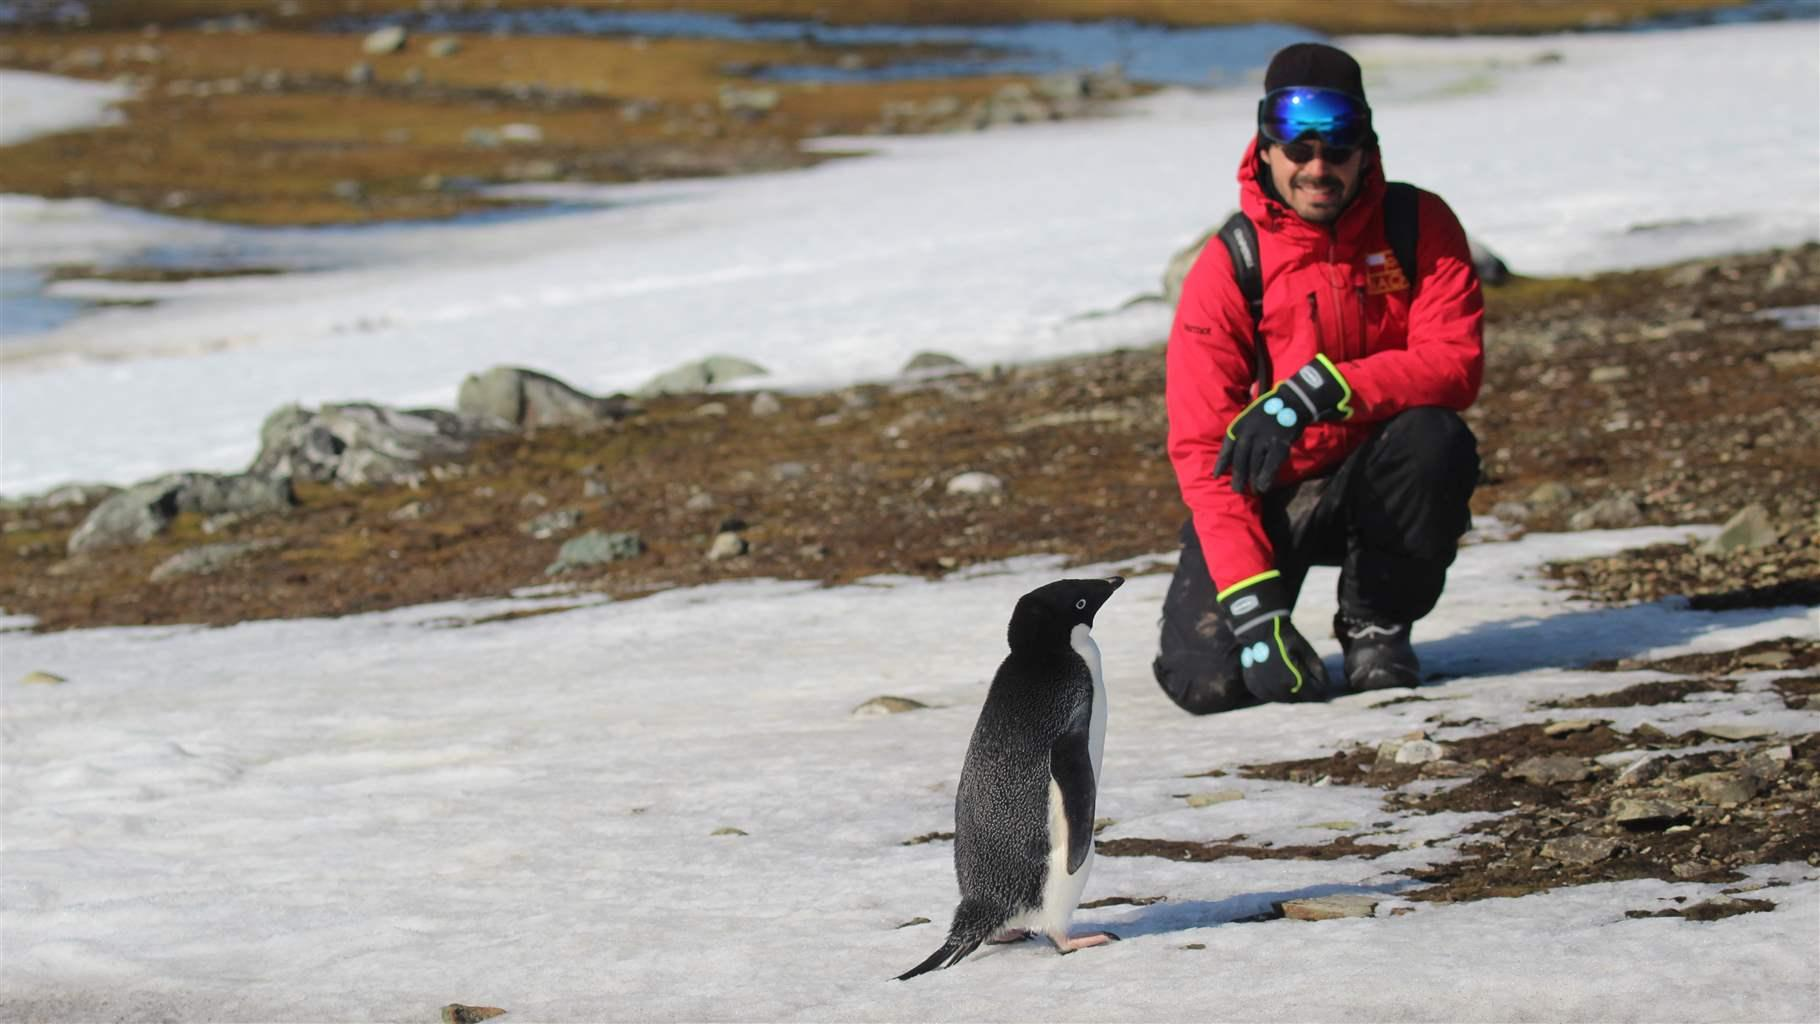 Study Confirms Antarctic Penguins Are Harmed by Krill Fishing and Climate Change